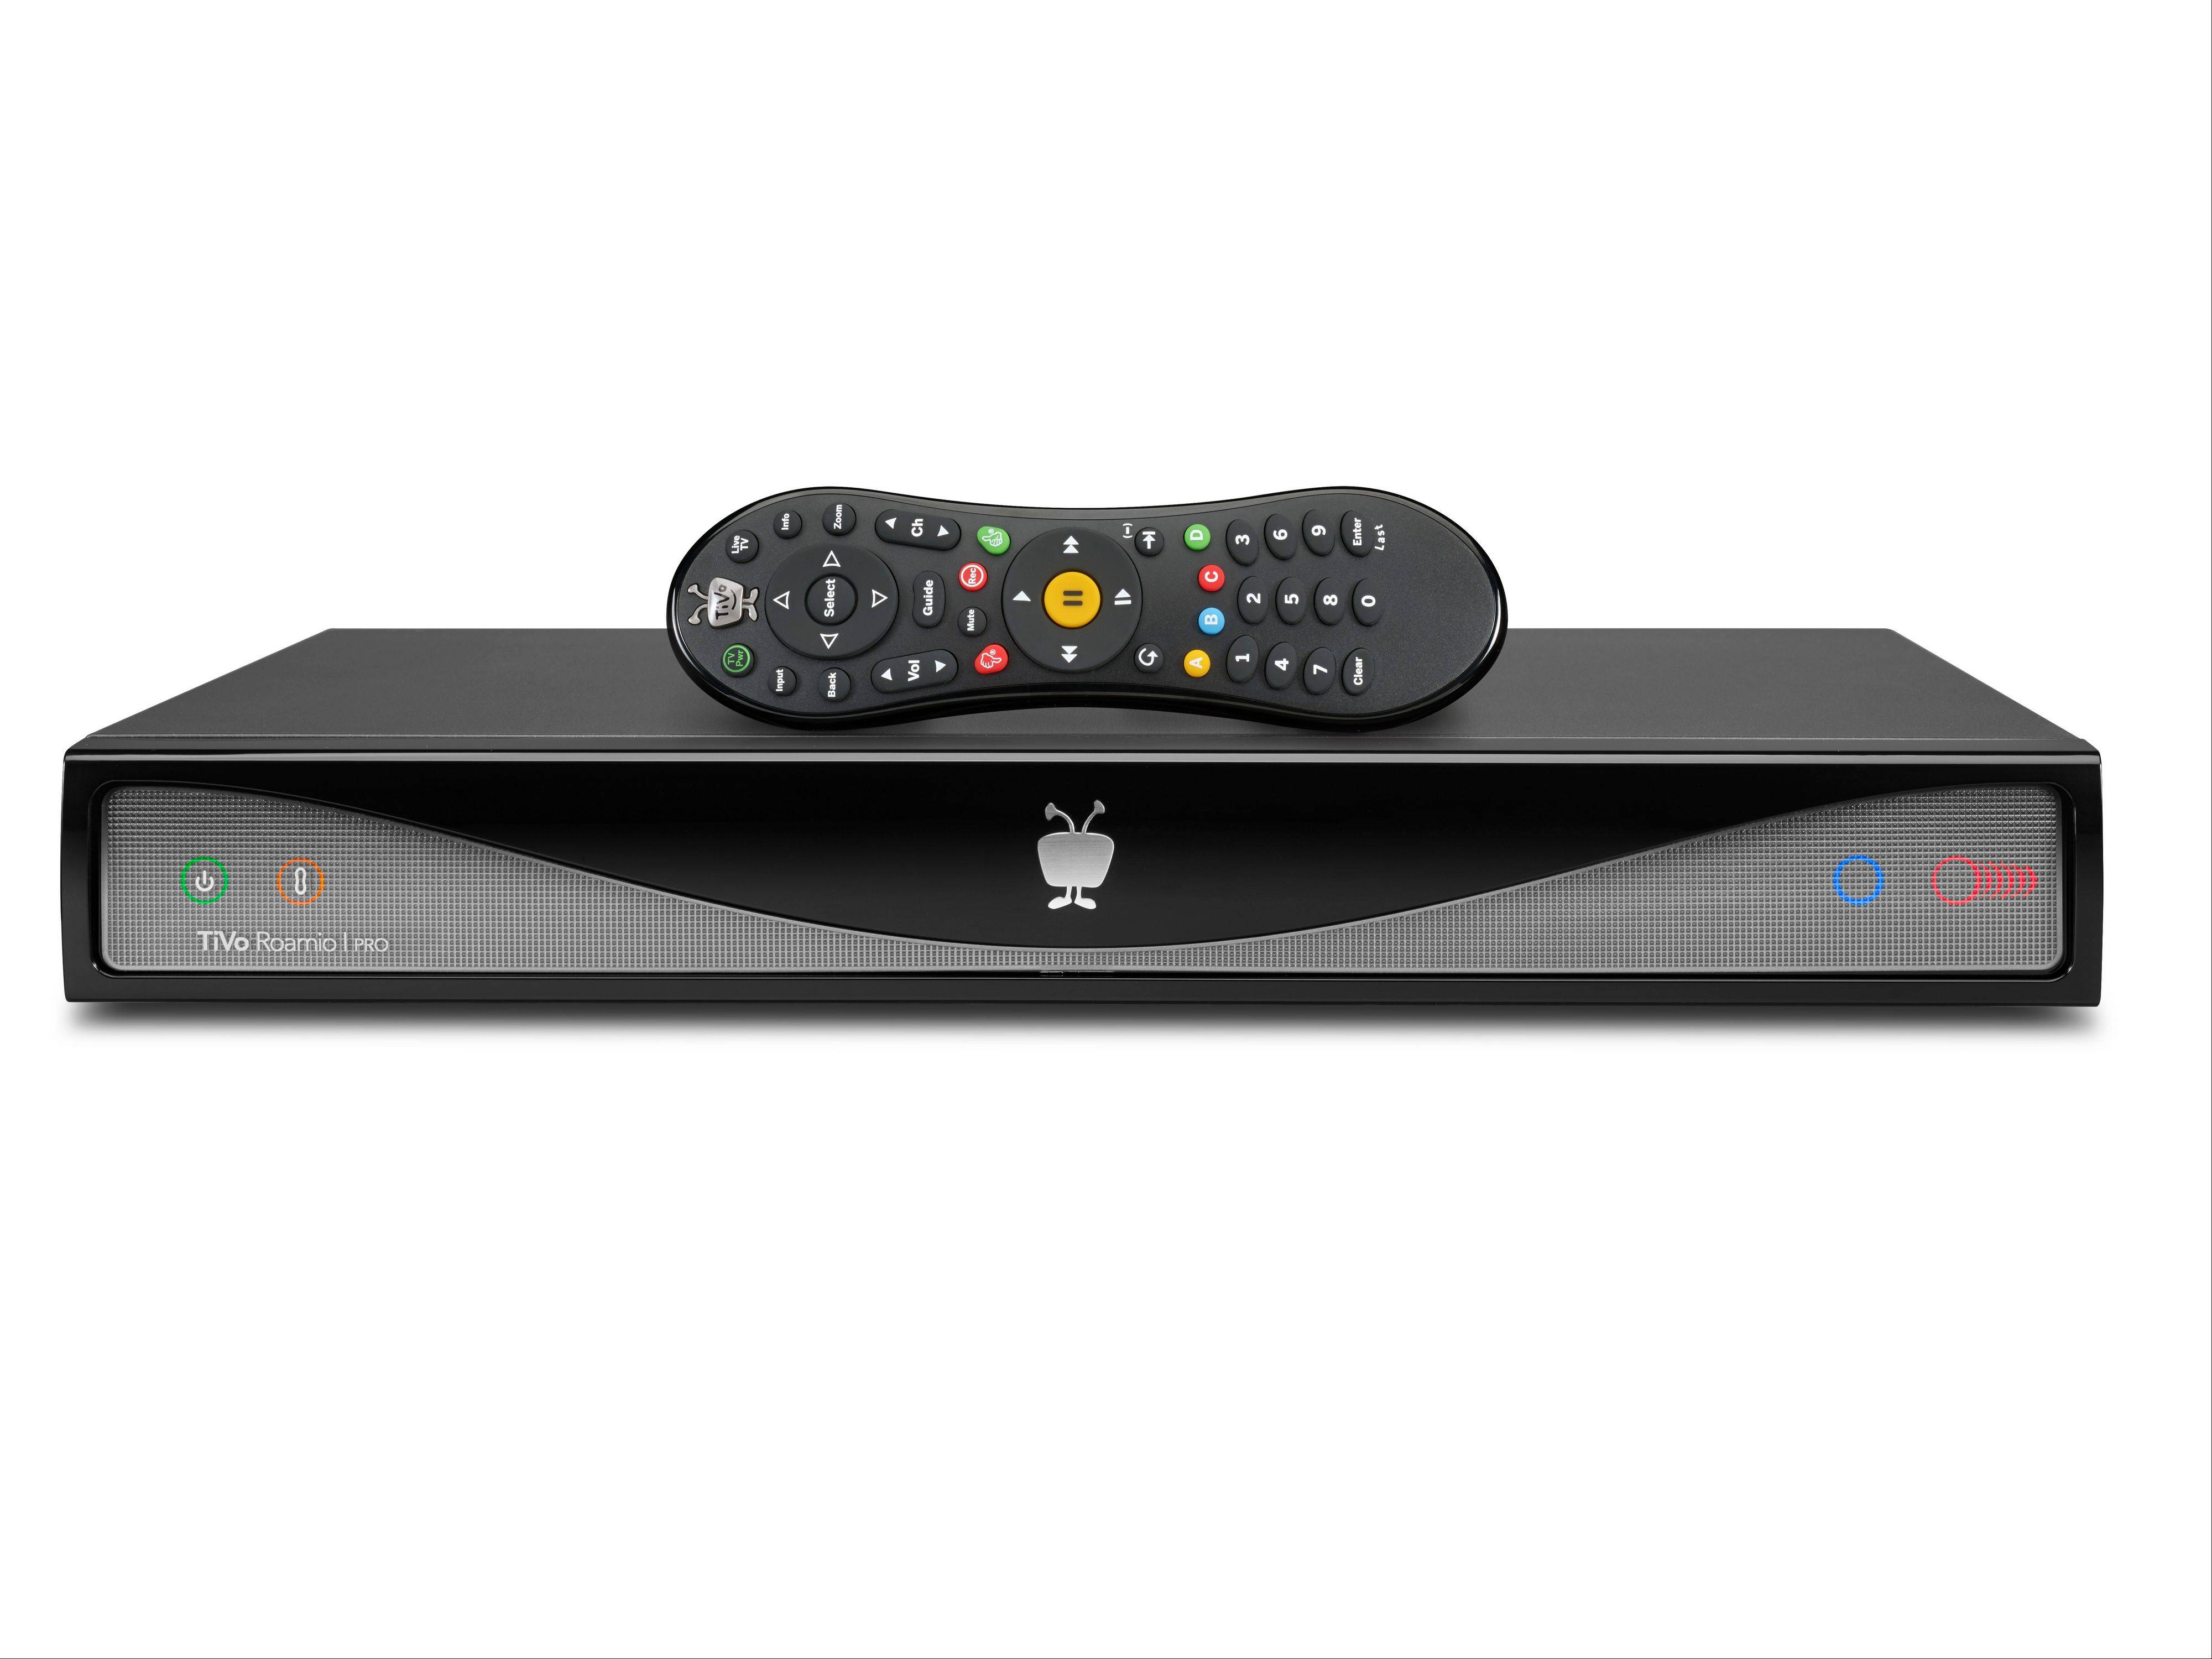 This image provided by TiVo Inc. shows a TiVo Roamio DVR, one of the companies new digital video recorders.